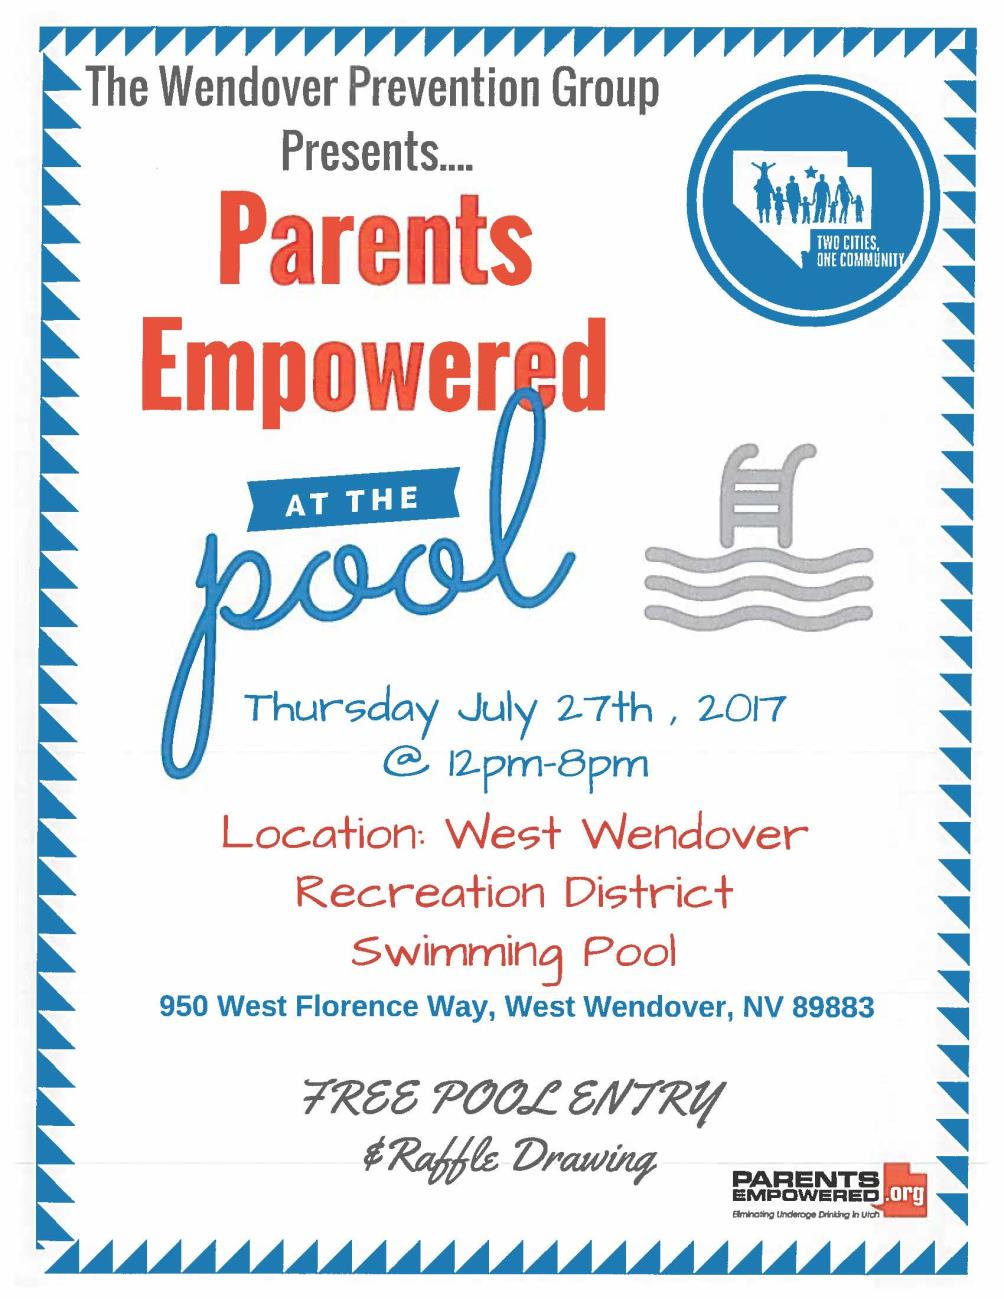 Image Parents Empowered Free Pool Day Flyer 7-27-17